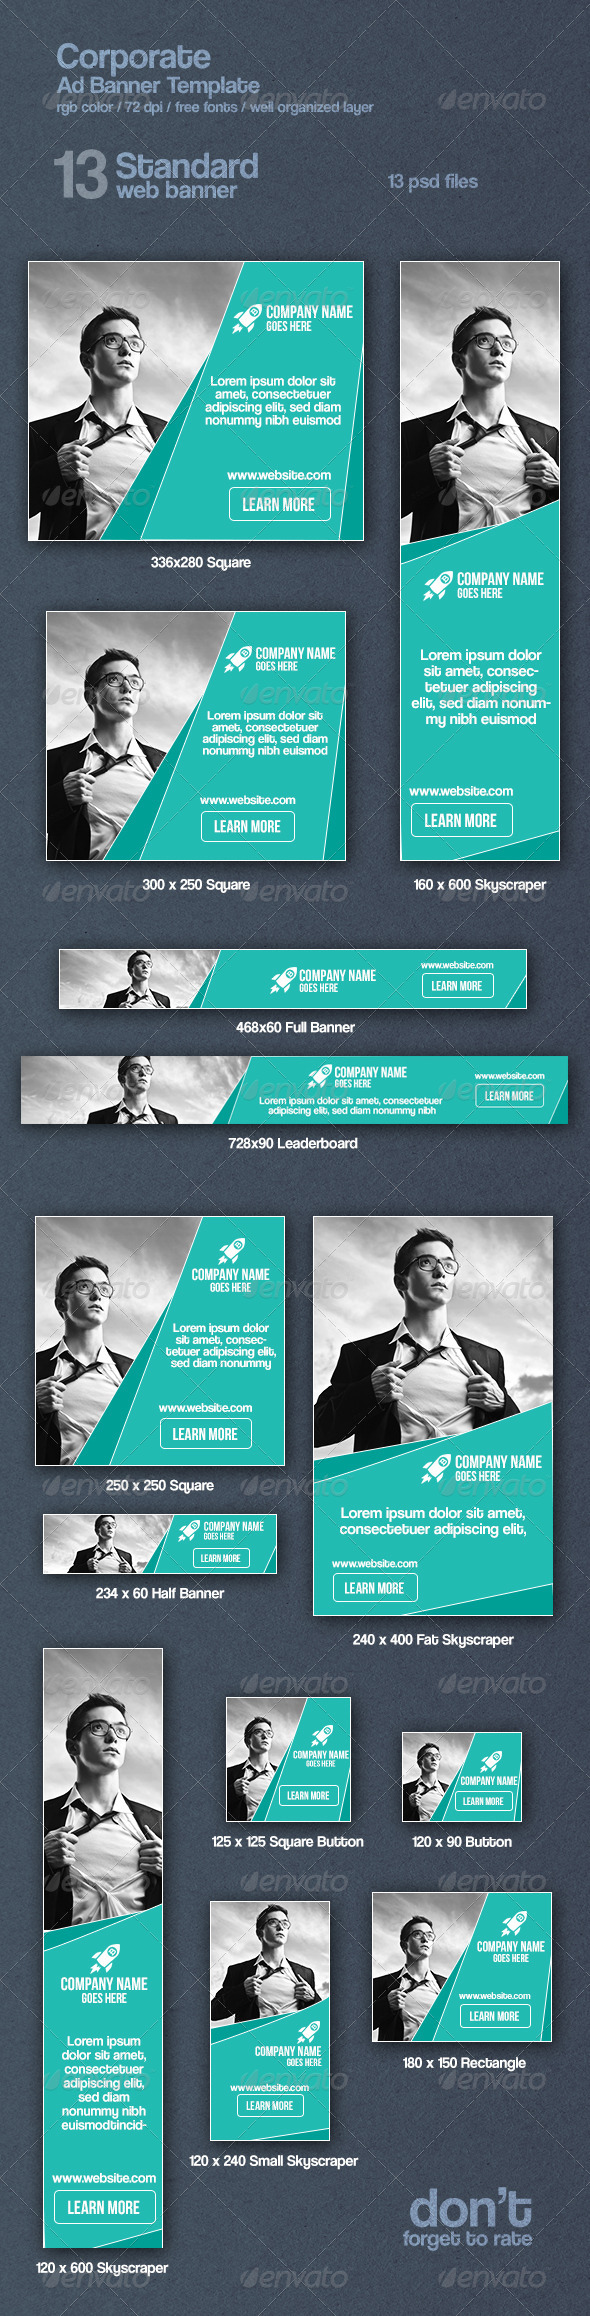 GraphicRiver Corporate Web Ad Banners 8619608